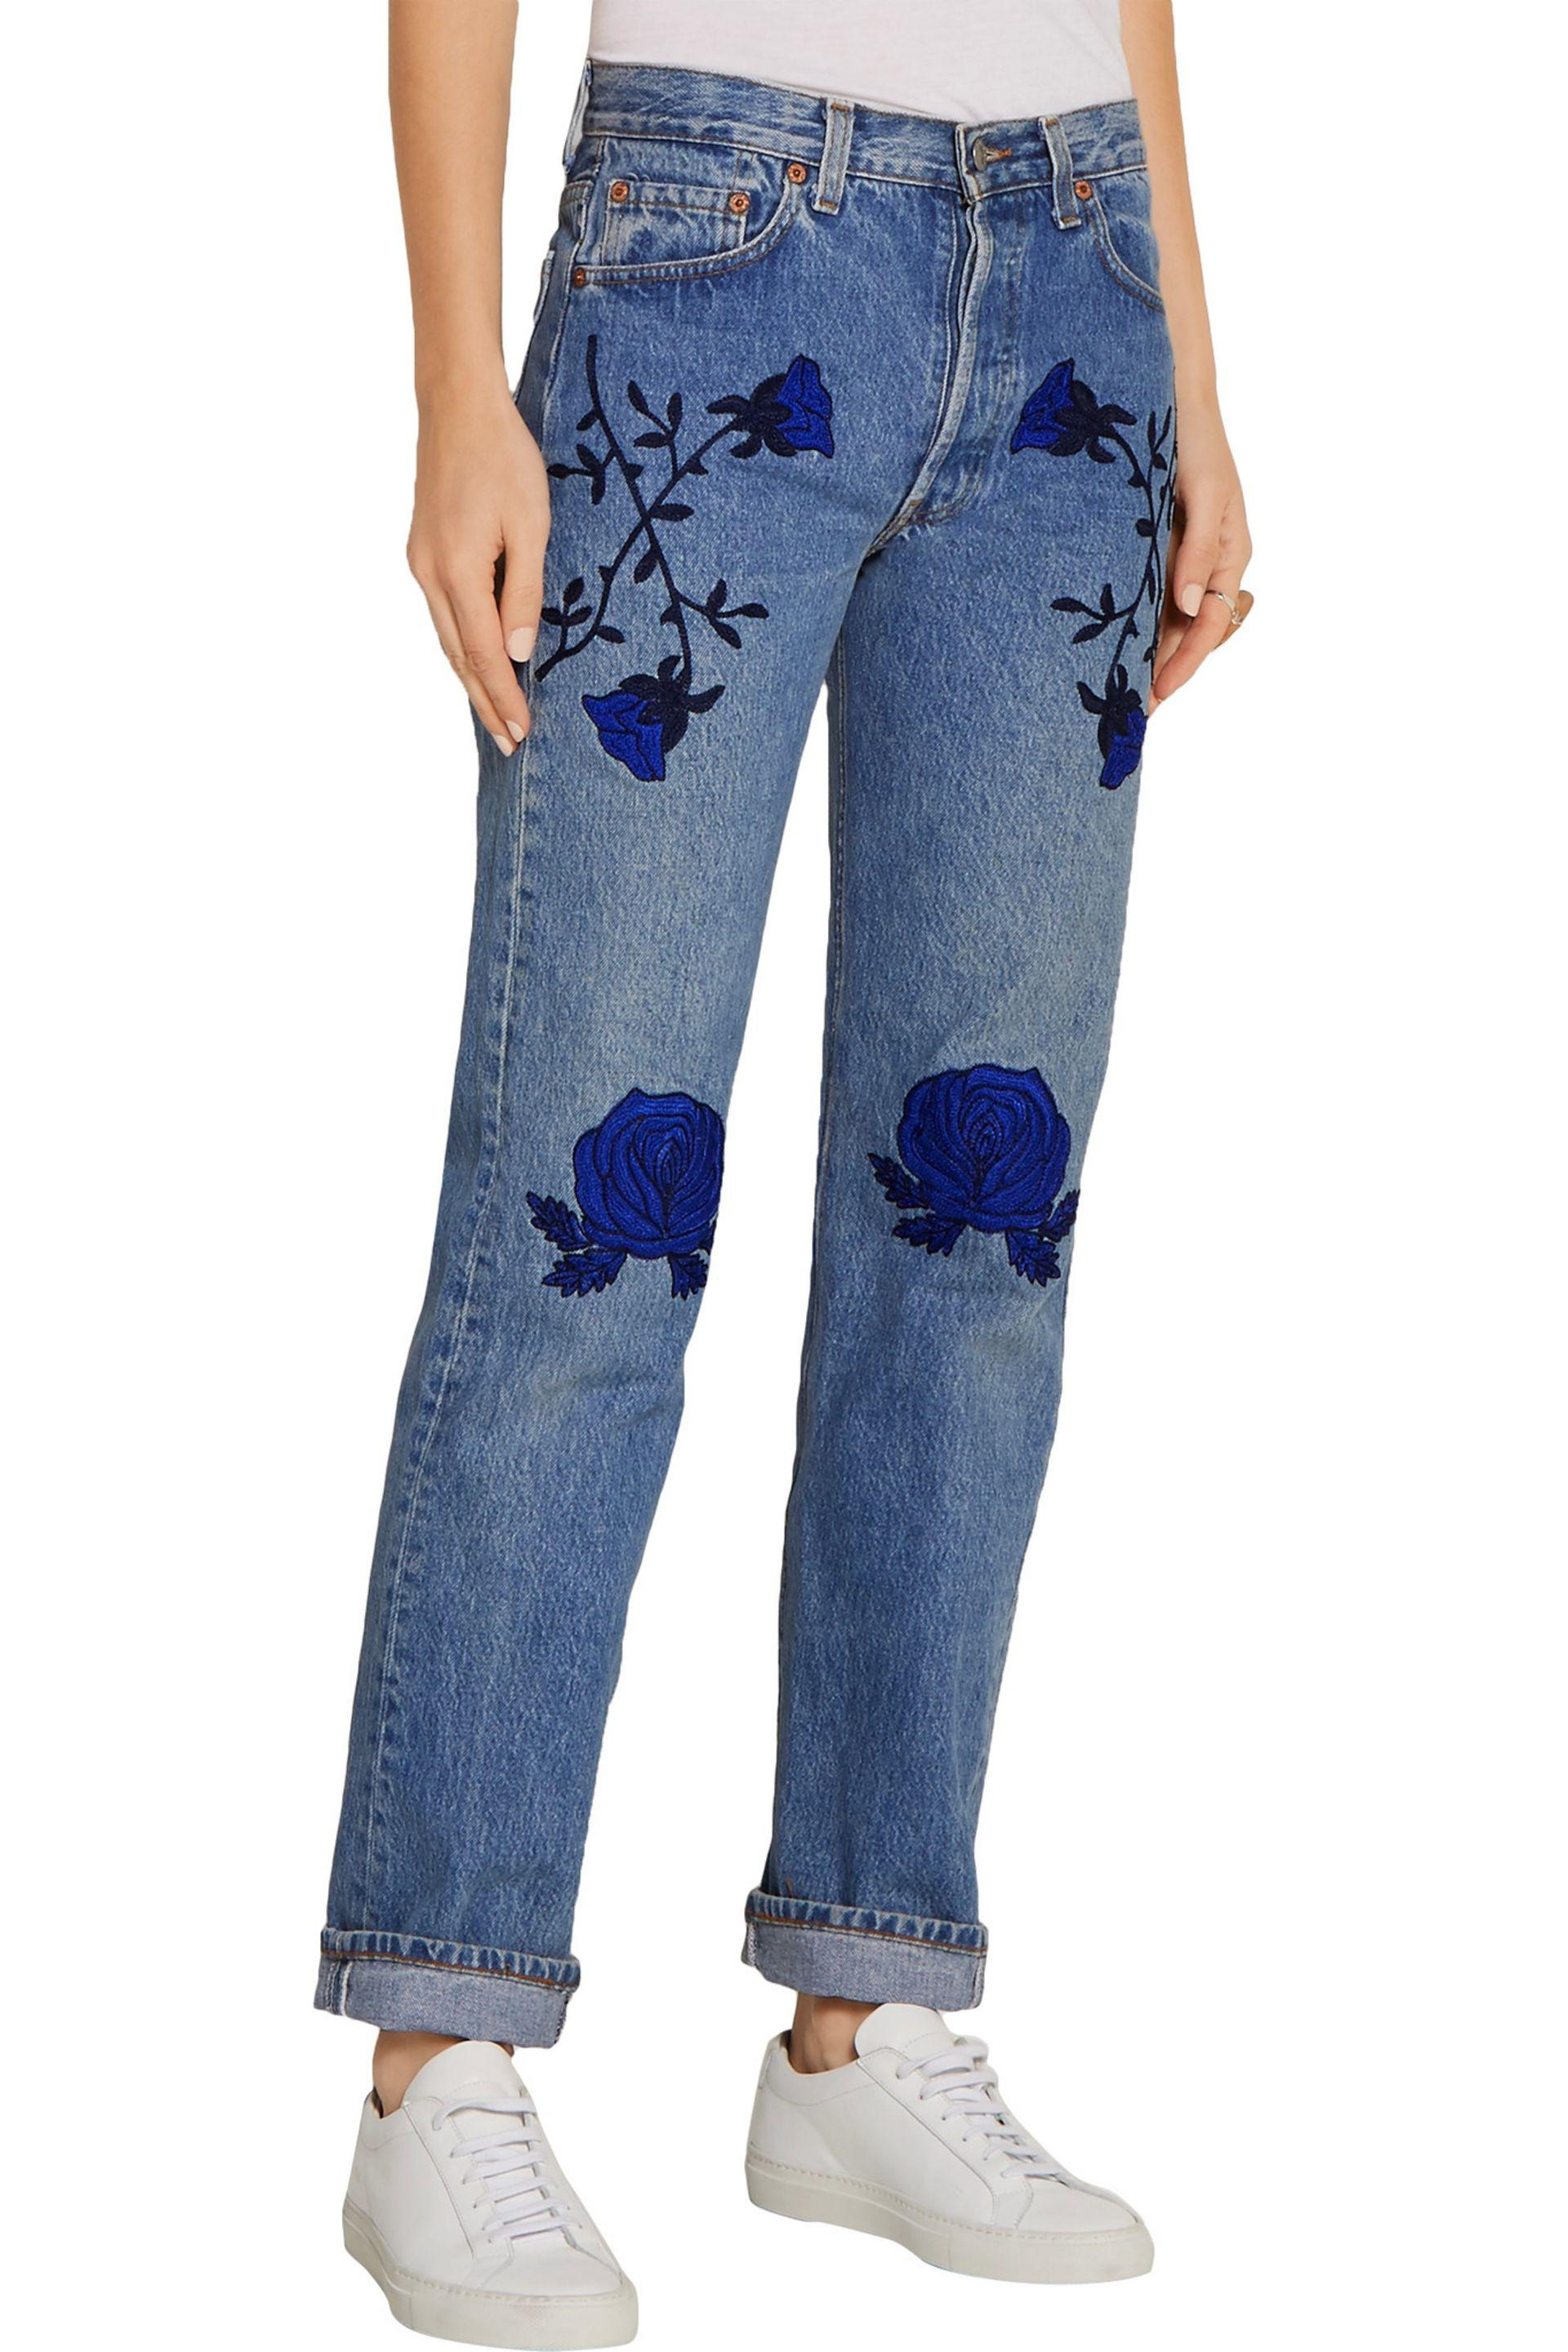 Bliss and Mischief Conjure Embroidered Mid-rise Straight-leg Jeans Mid Denim Size 25 in Blue